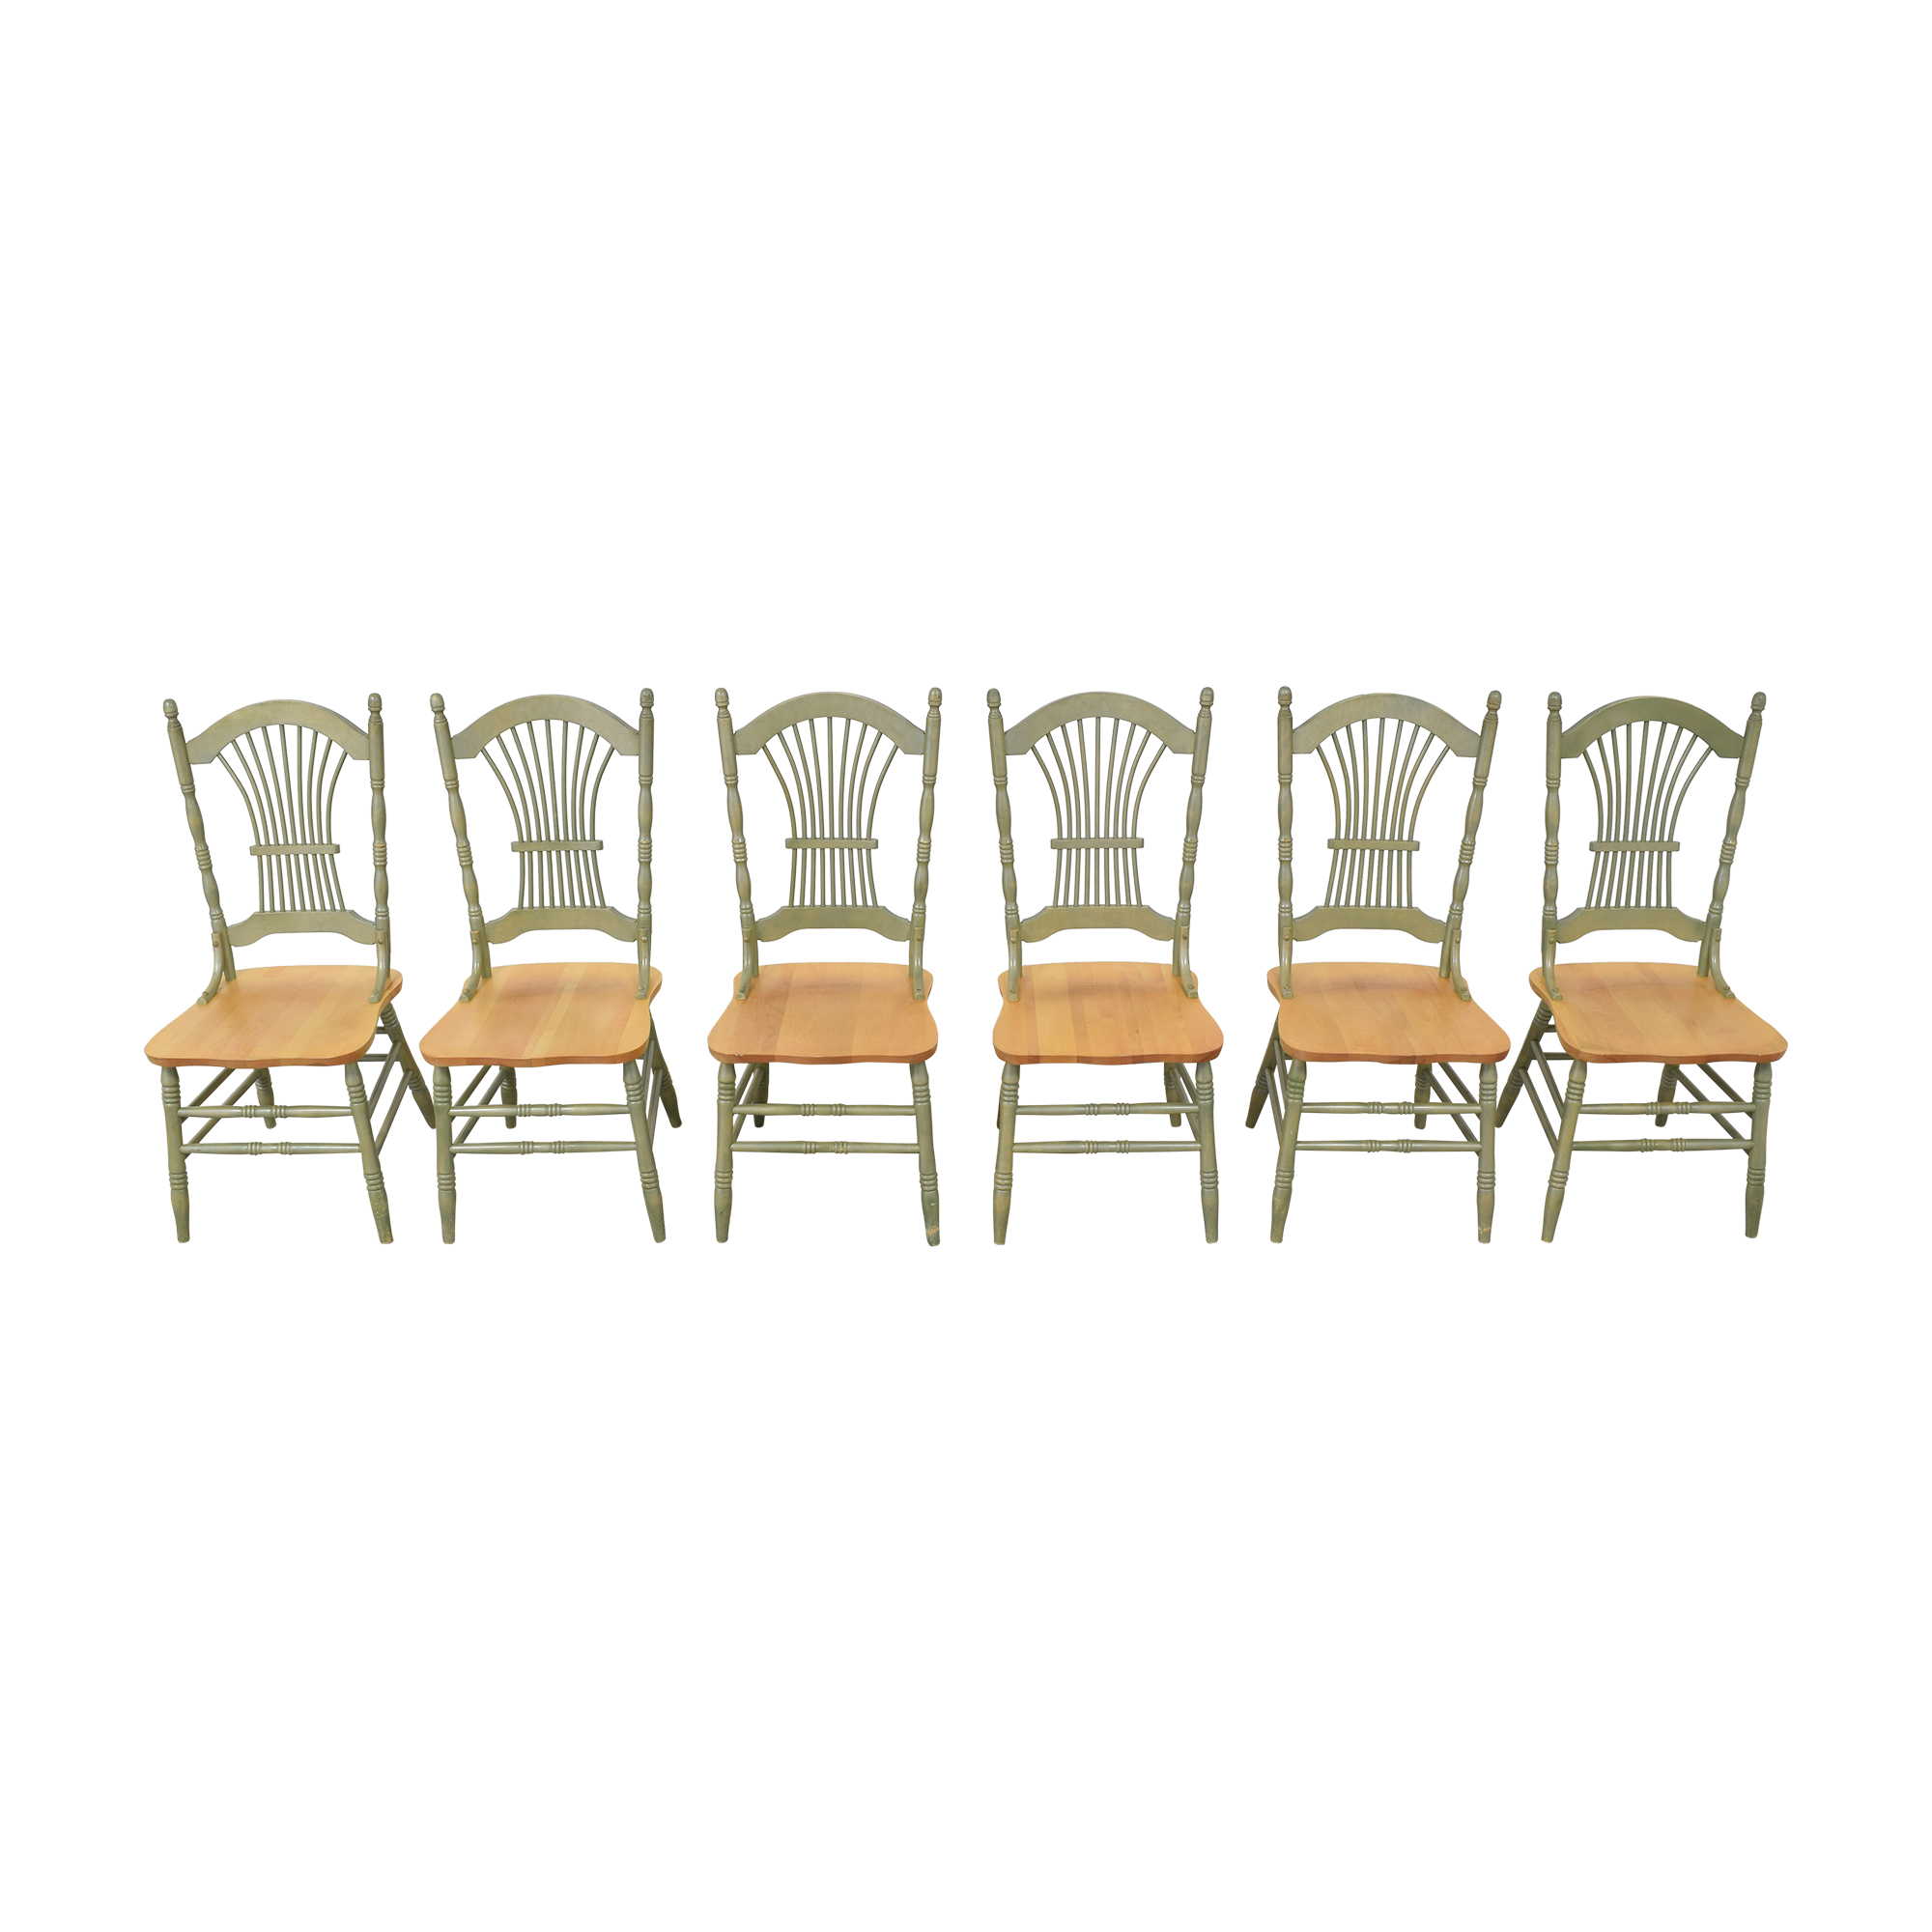 Canadel Canadel Sheaf Back Dining Chairs ma